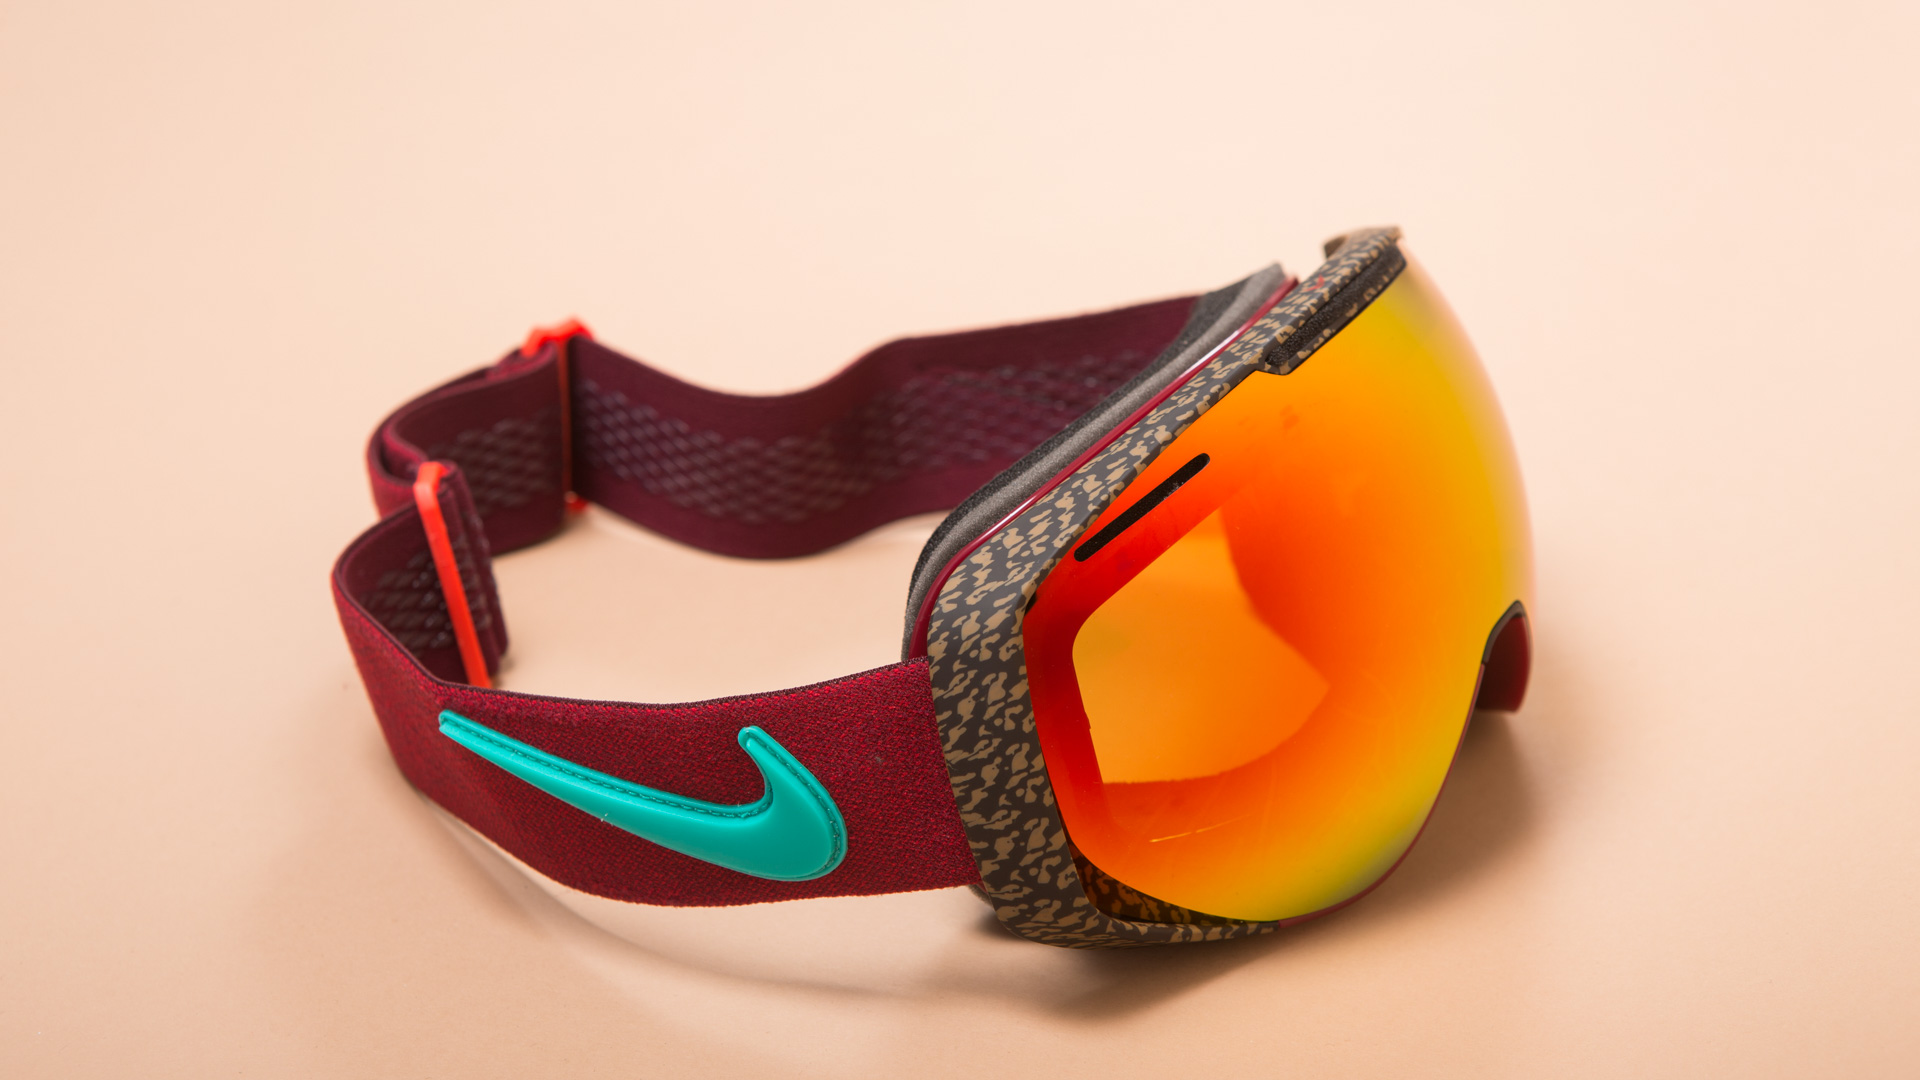 Nike Khyber Schneebrille 2016-2017 Review